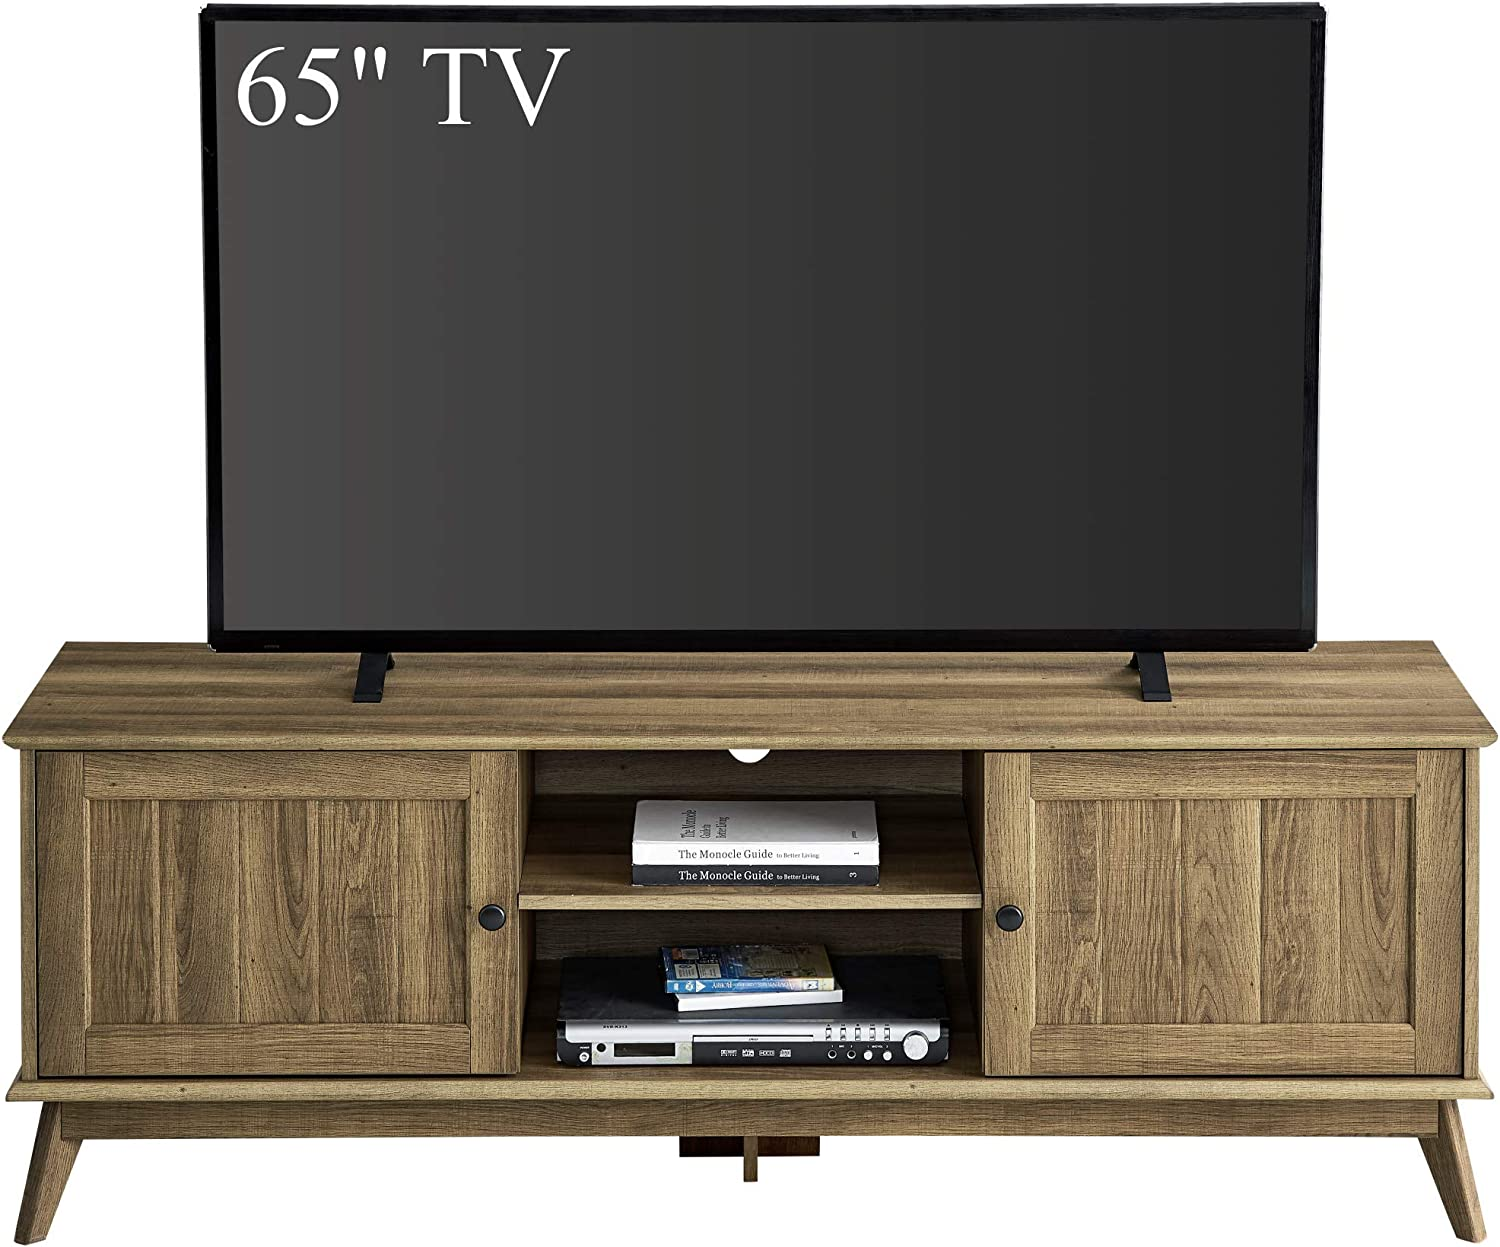 Newport Series Modern TV Media Console Stand Entertainment Center with Two Doors and Adjustable Storage Shelves | Sturdy and Wide| Easy Assembly |Golden Oak Wood Look Accent Living Room Home Furniture